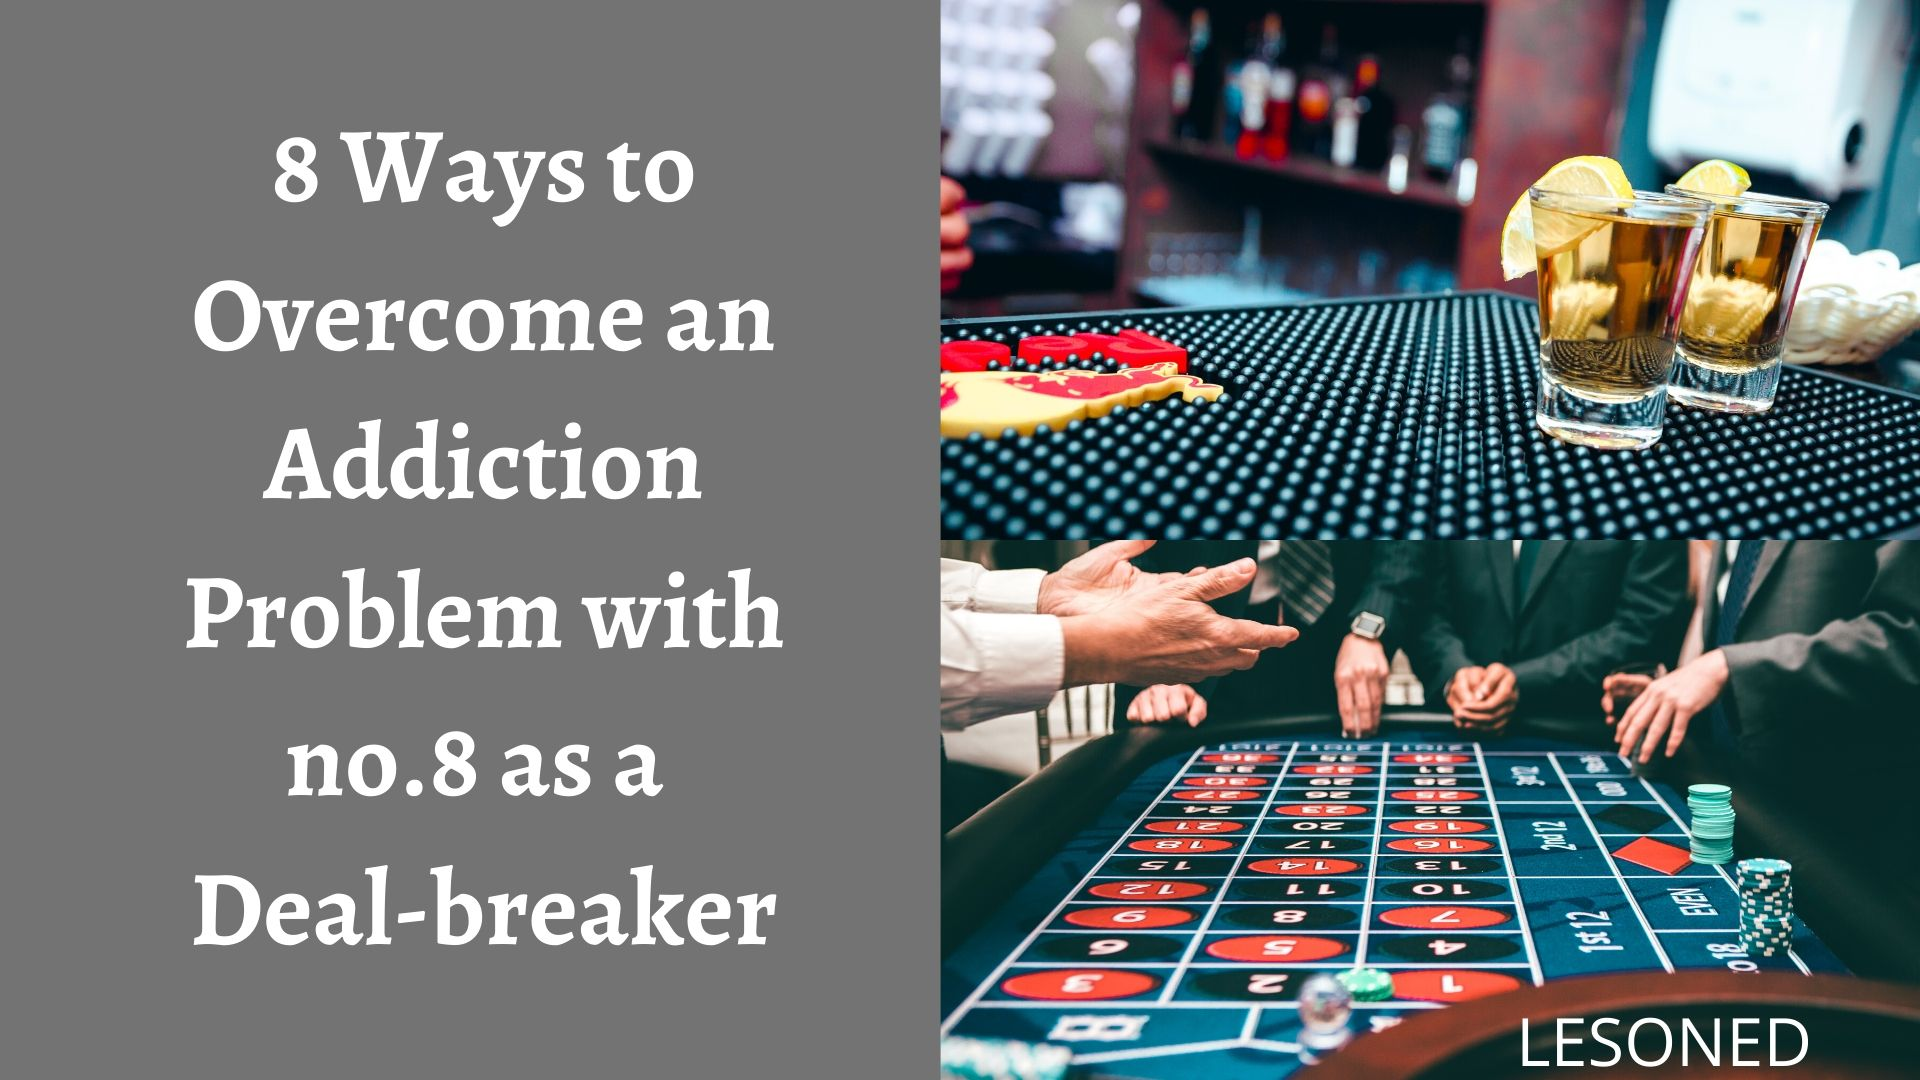 8 Ways to Overcome an Addiction Problem with no.8 as a Deal-breaker